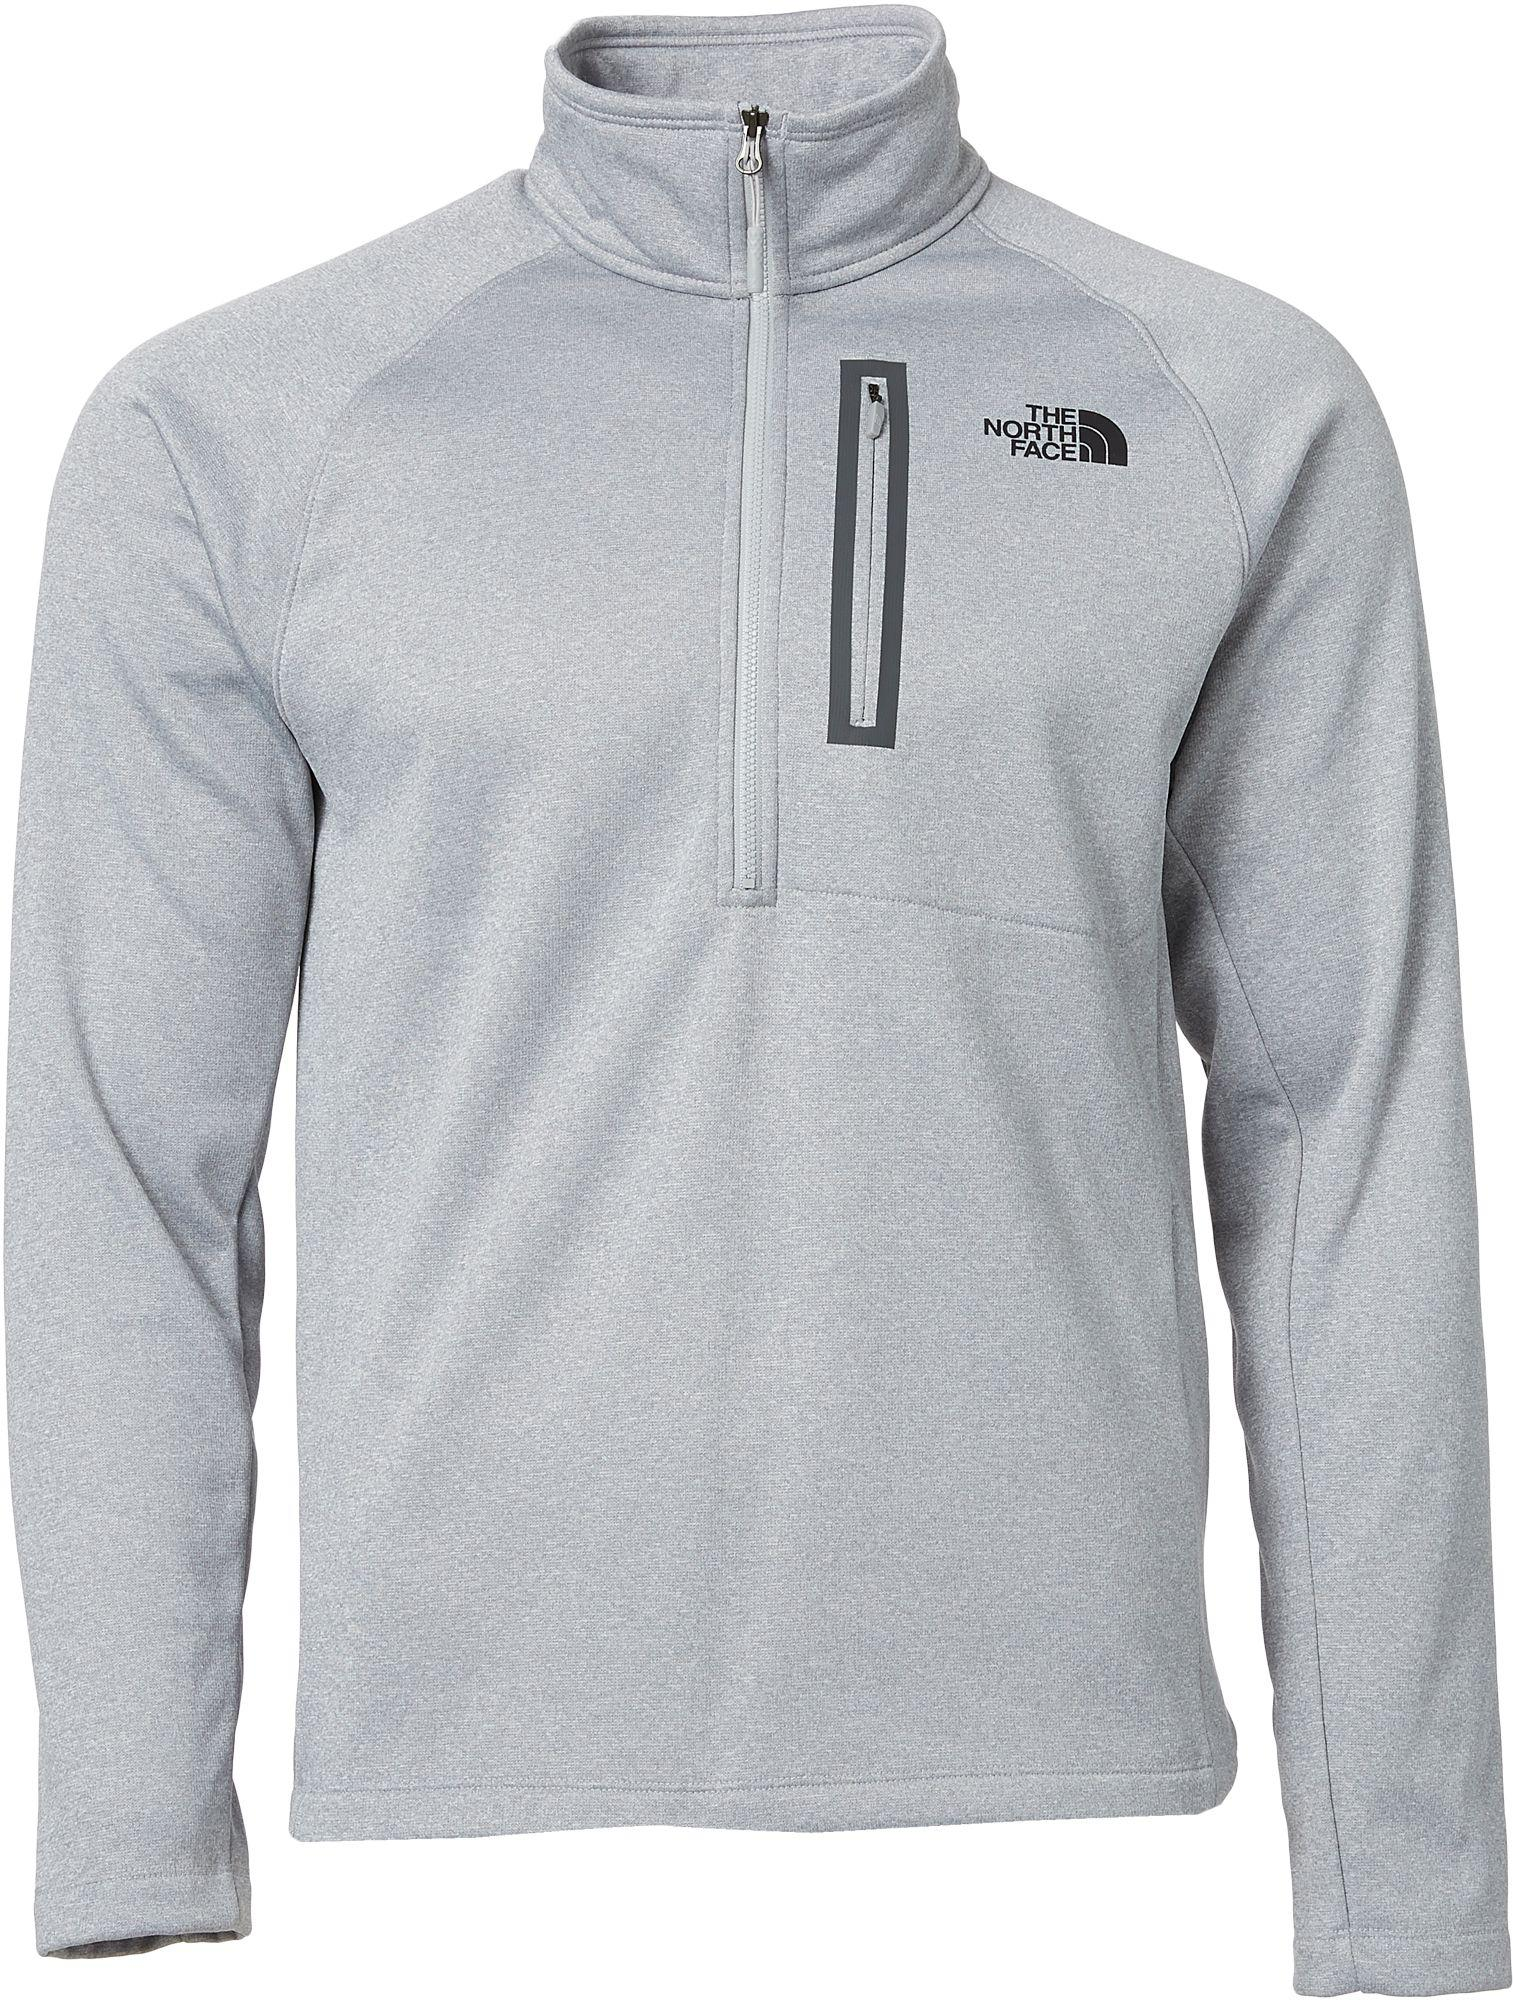 6a116d4a7 The North Face Gray Canyonlands Half Zip Pullover - Past Season for men